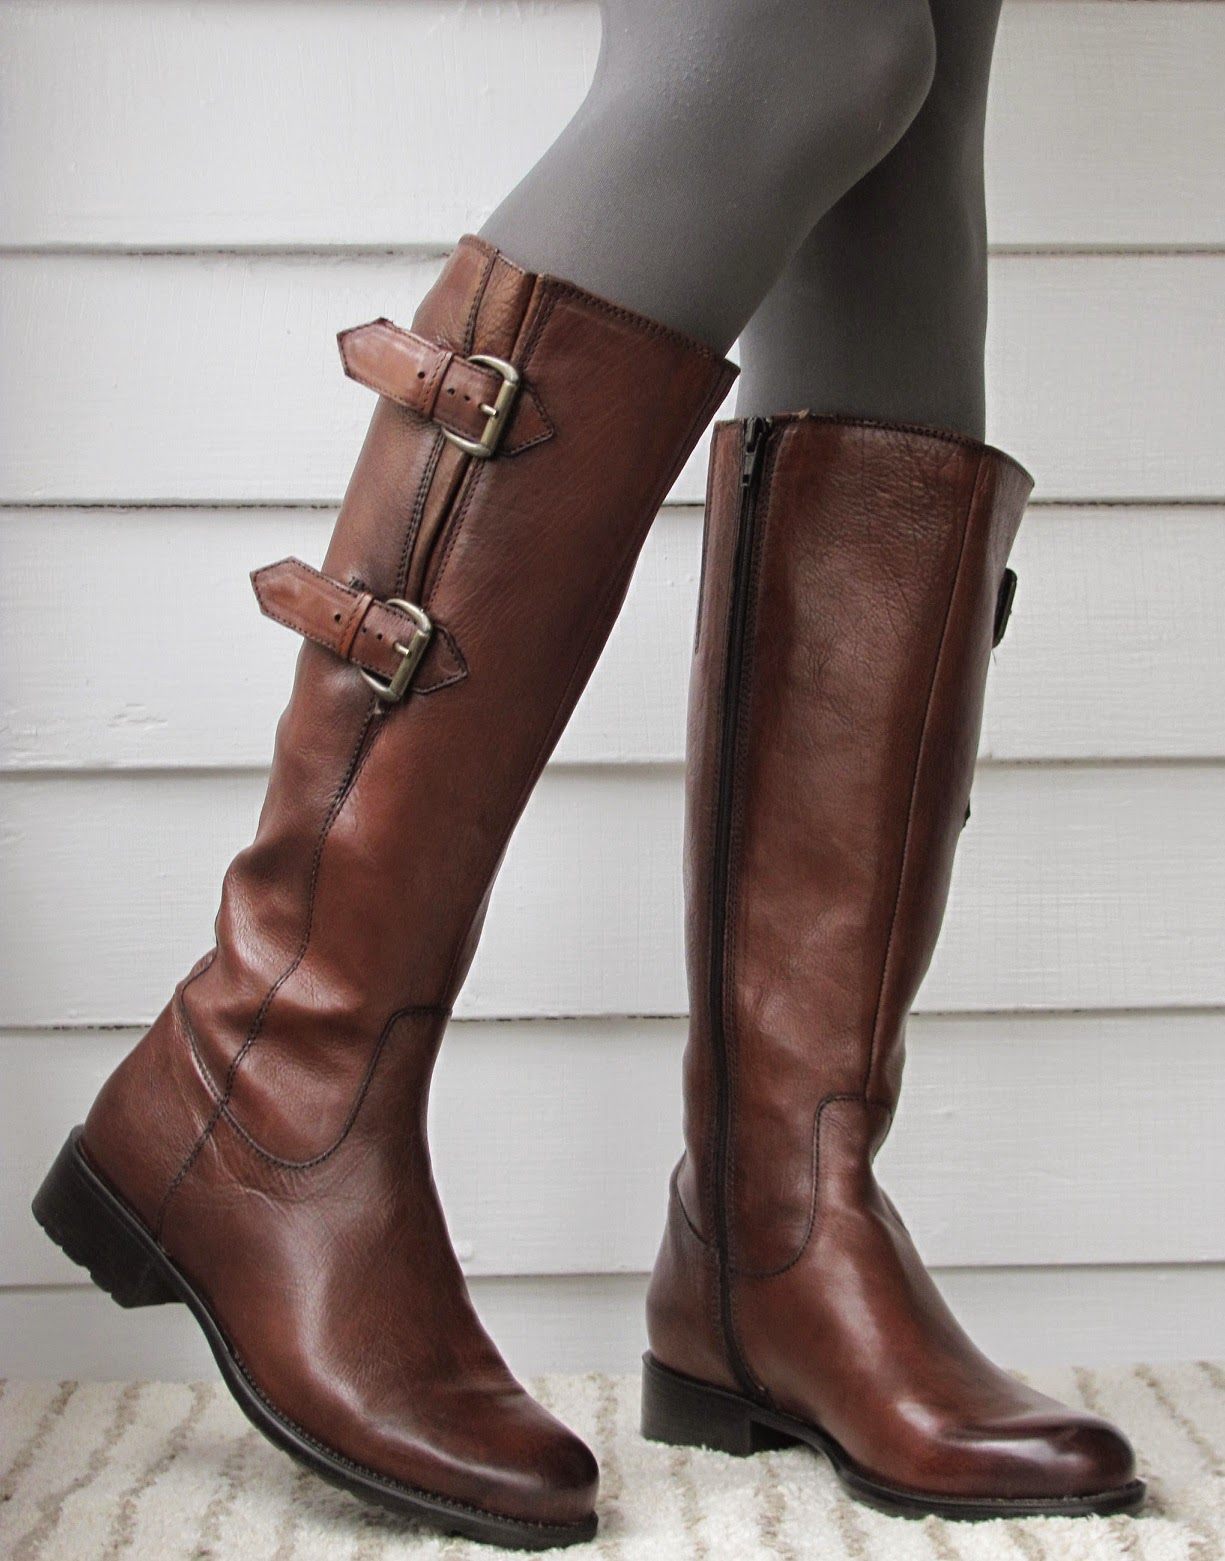 Howdy Slim Riding Boots For Thin Calves April 2014